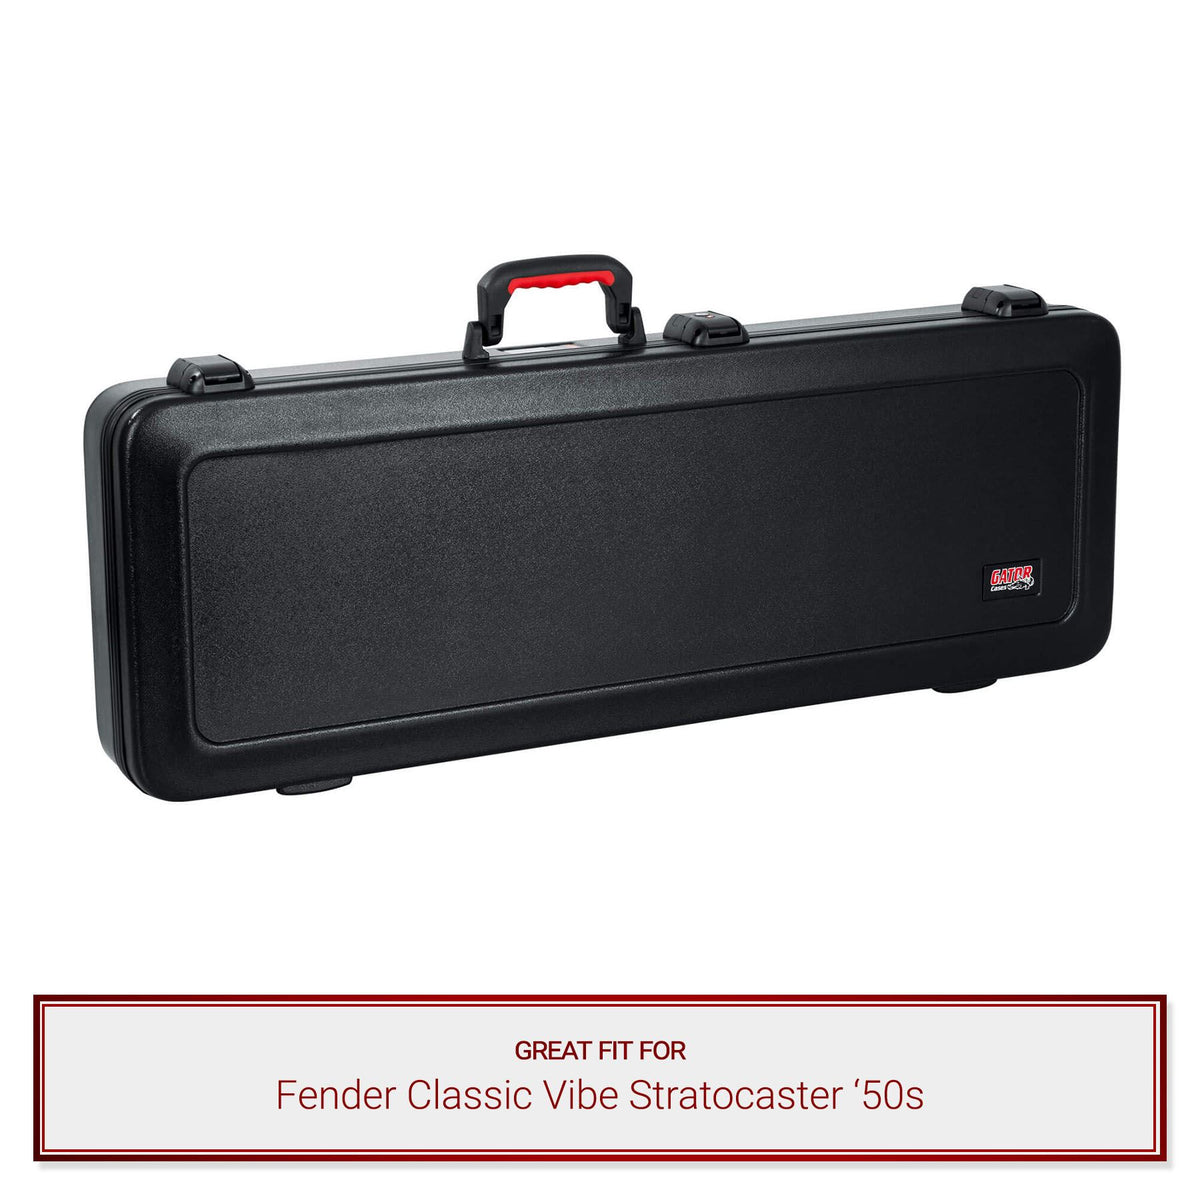 Gator TSA Electric Case fits Fender Classic Vibe Stratocaster '50s